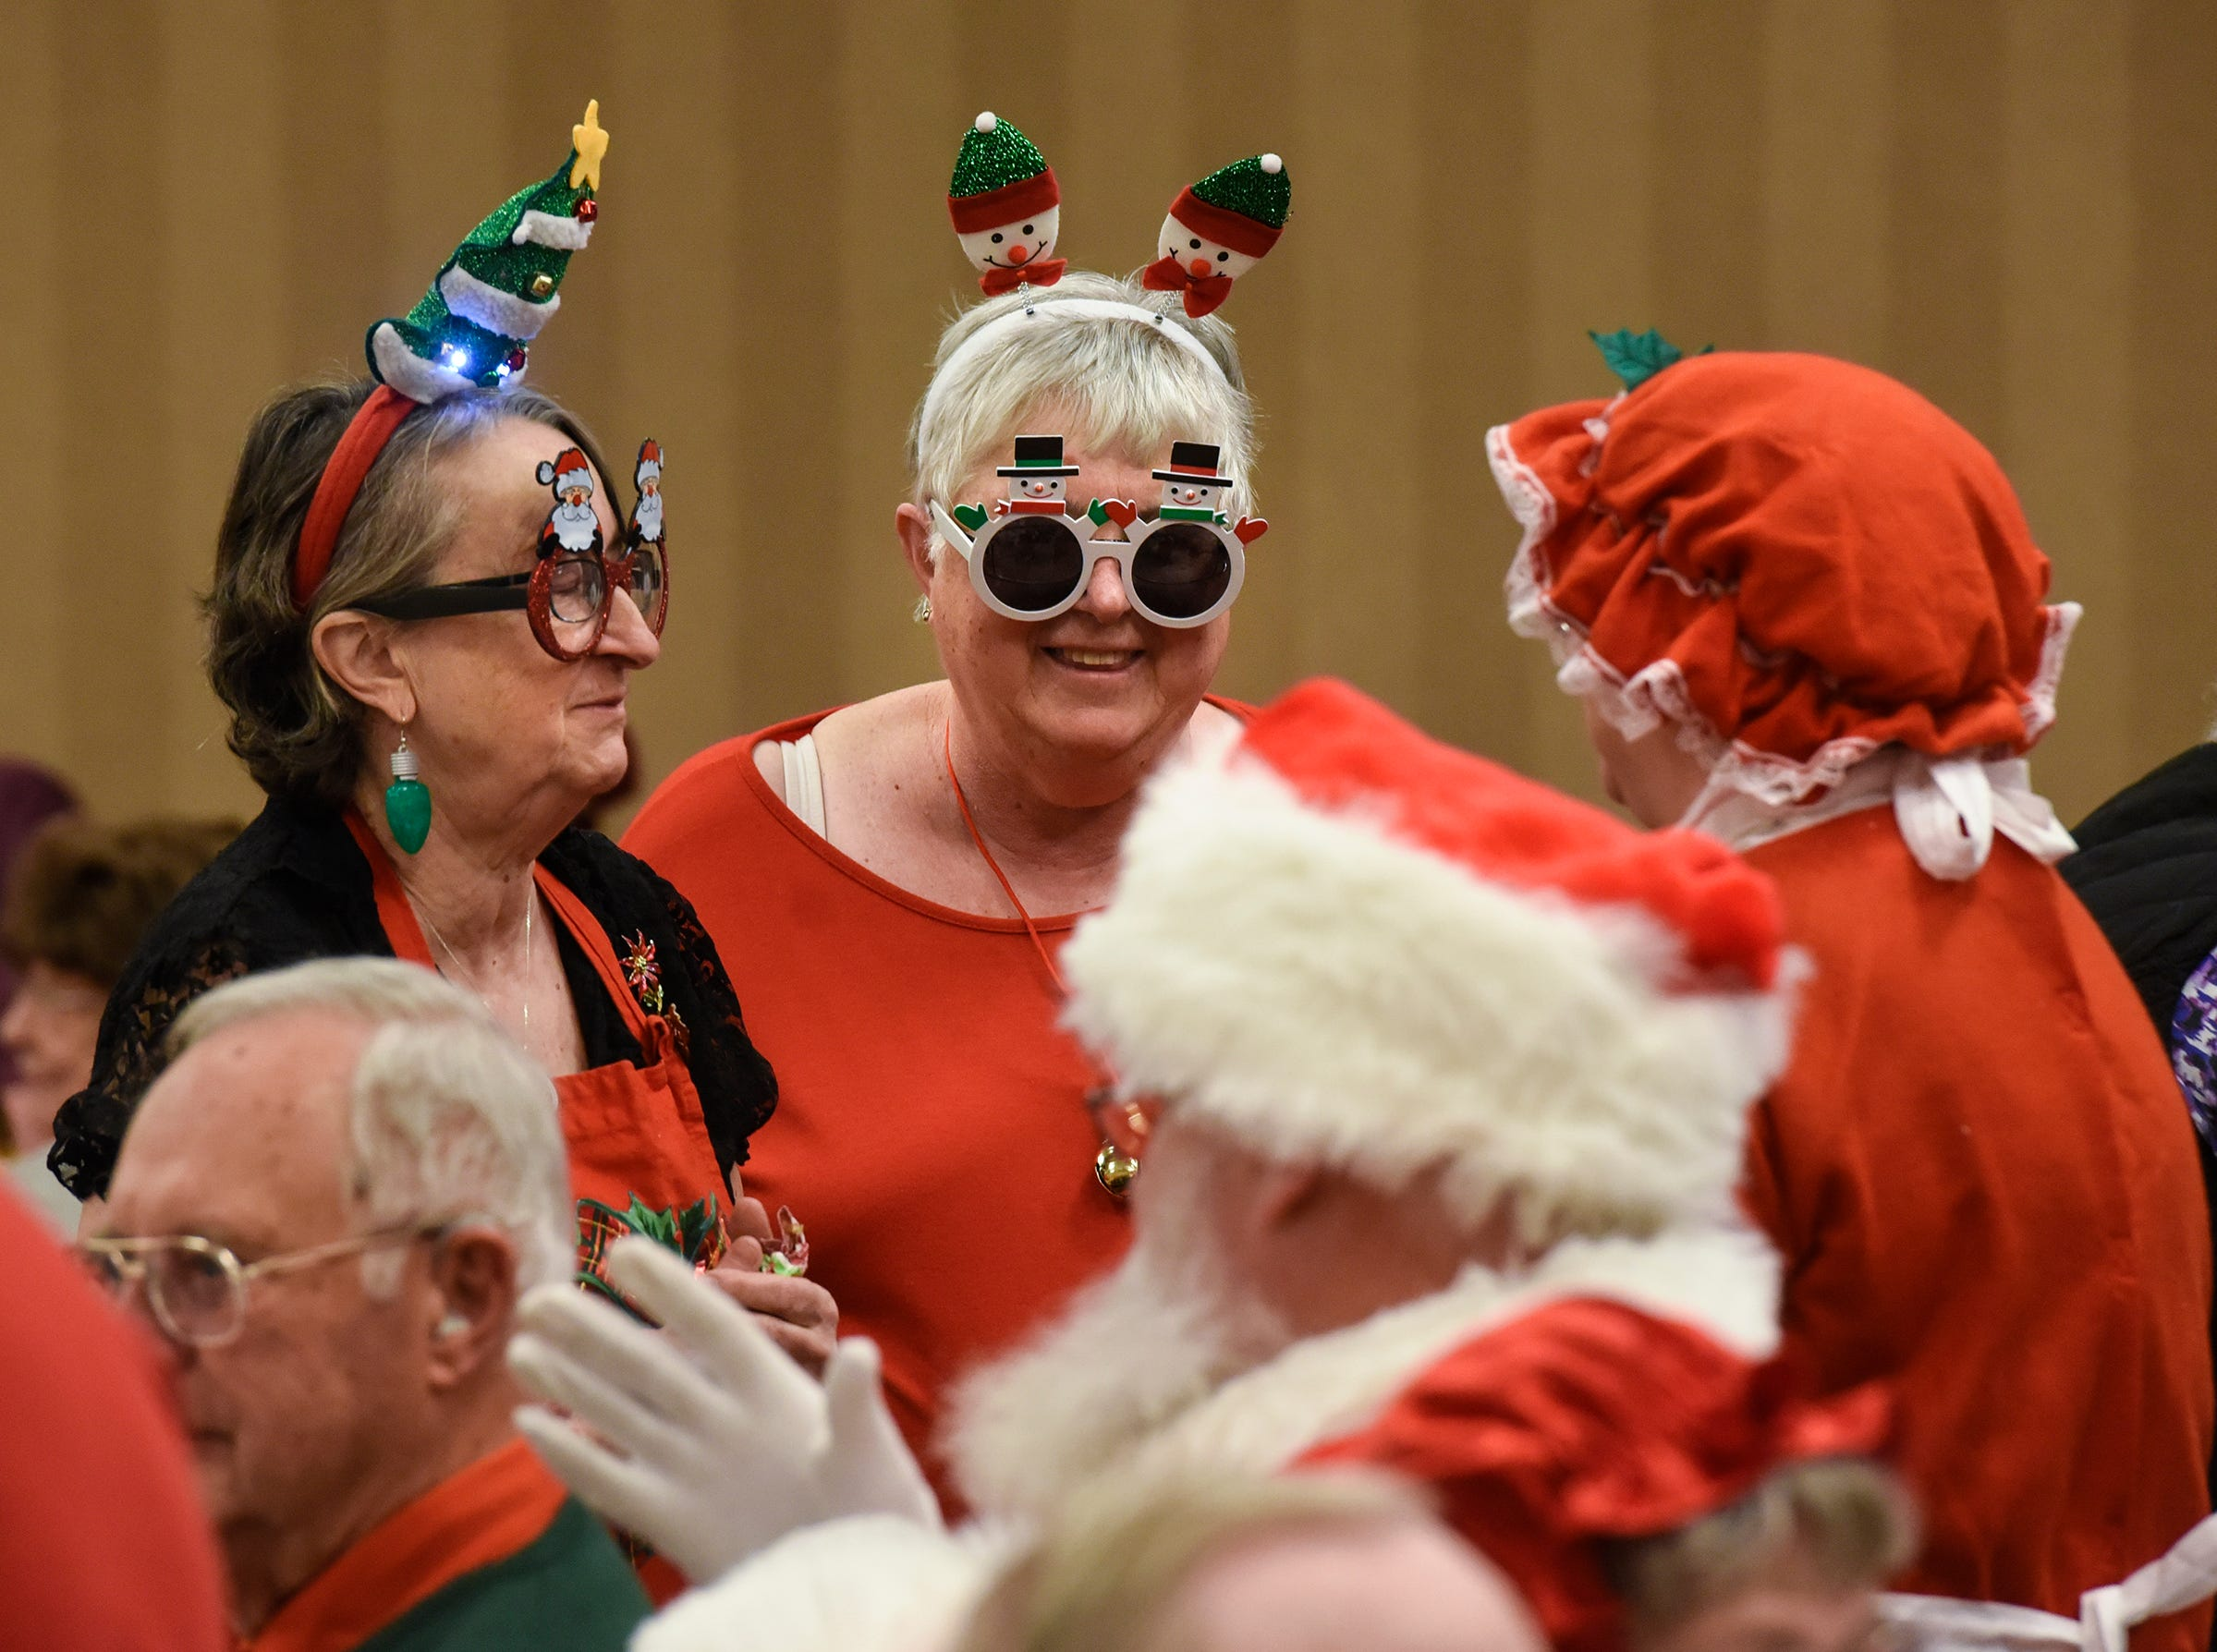 Festive glasses complete the look for volunteers during the Dinner with Santa event Monday, Dec. 17, in St. Cloud.